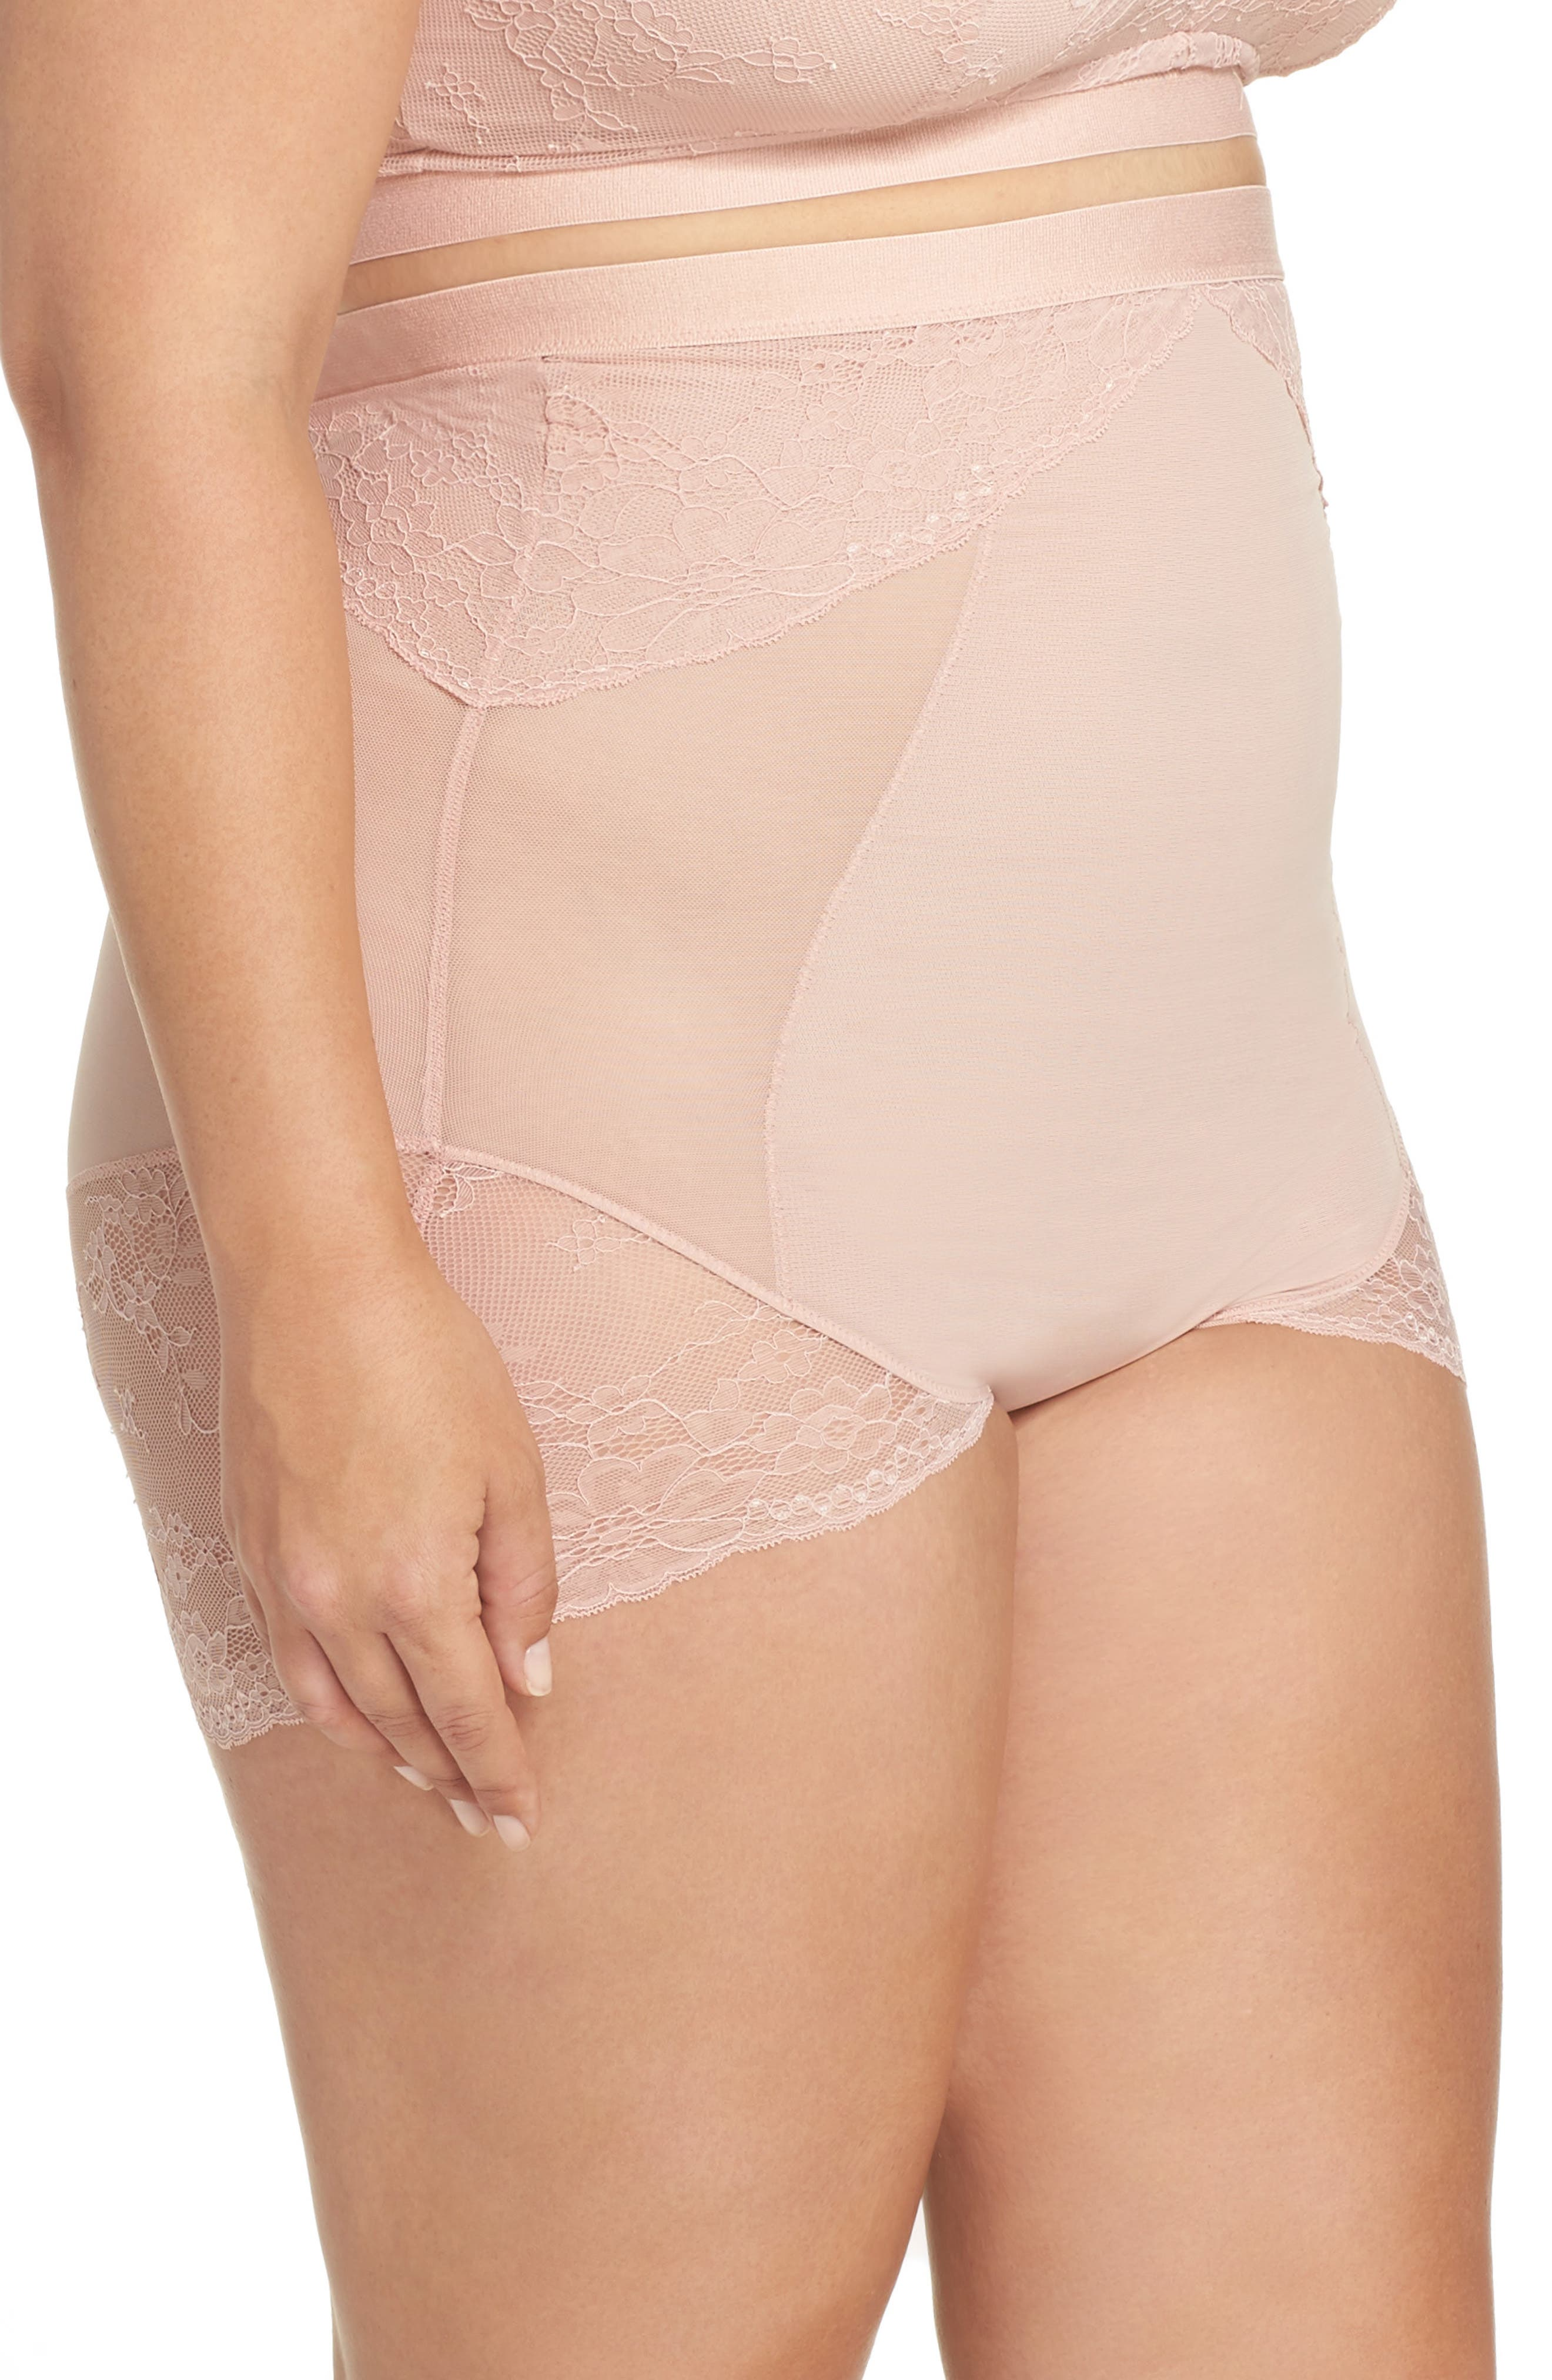 Alternate Image 3  - SPANX® Spotlight On Lace High Waist Briefs (Plus Size)